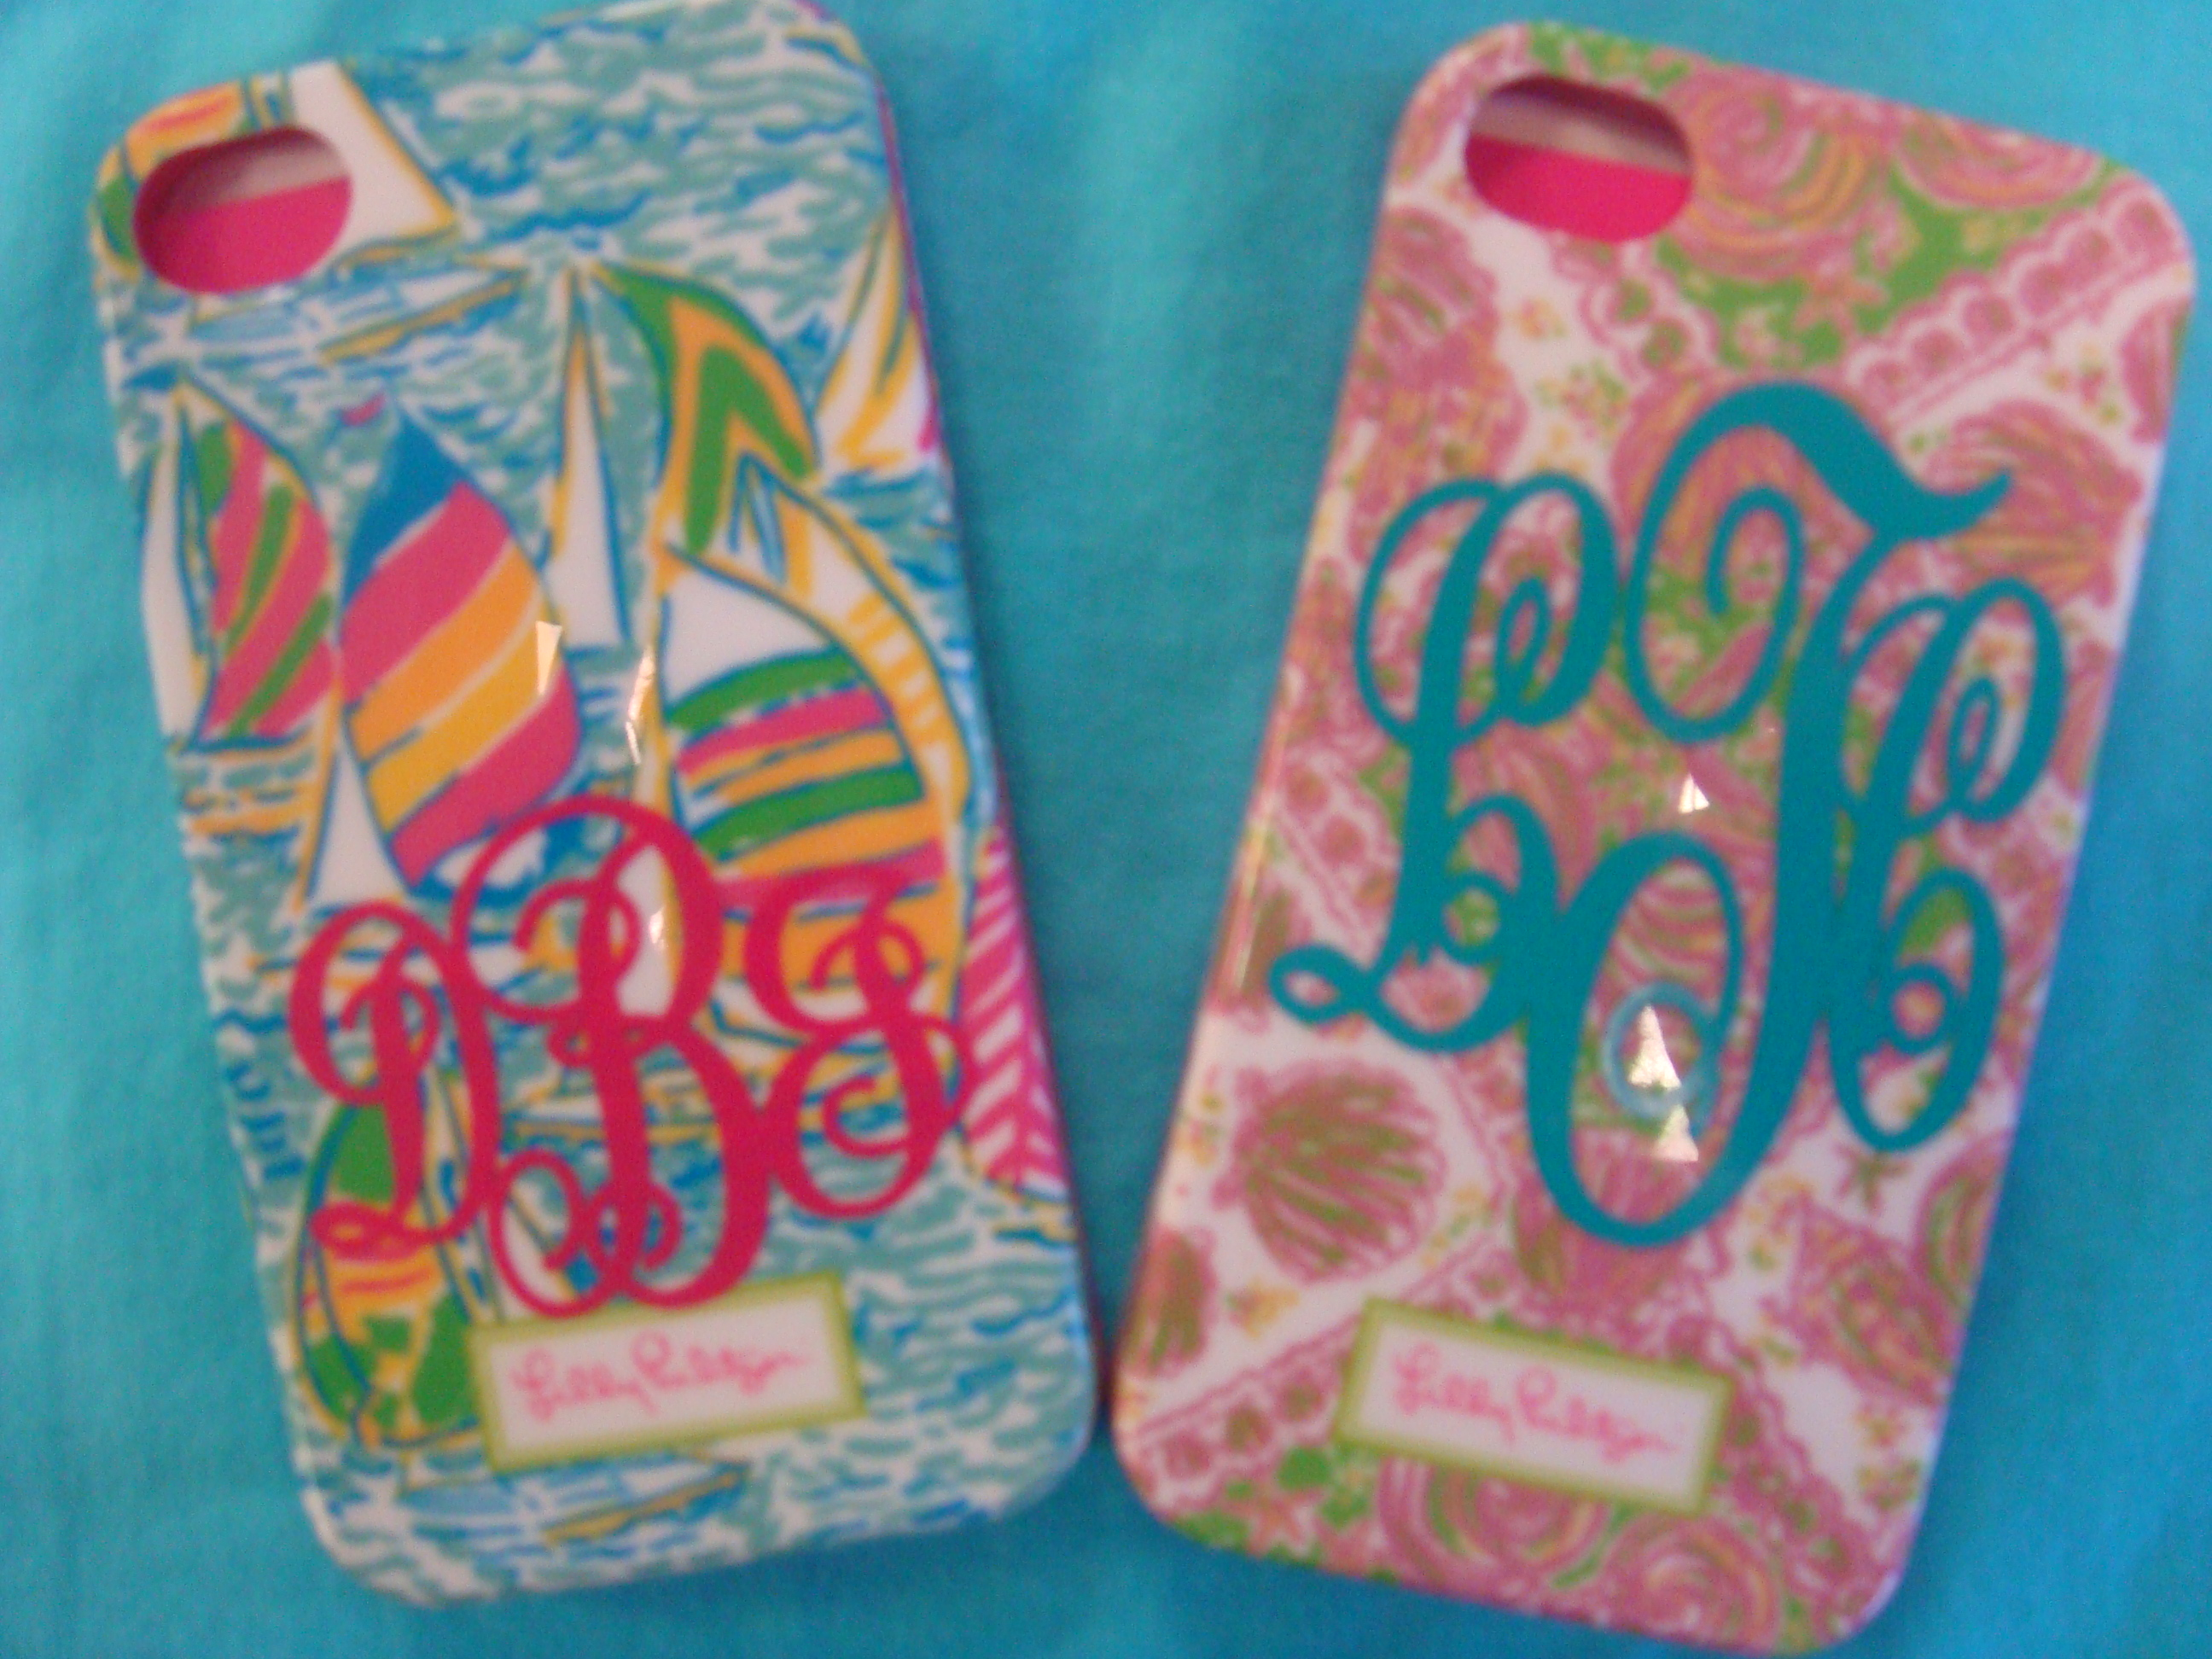 Lilly Pulitzer Phi Mu Fabric | Lilly Pulitzer Phone Case | Lilly Pulitzer Kindle Cover